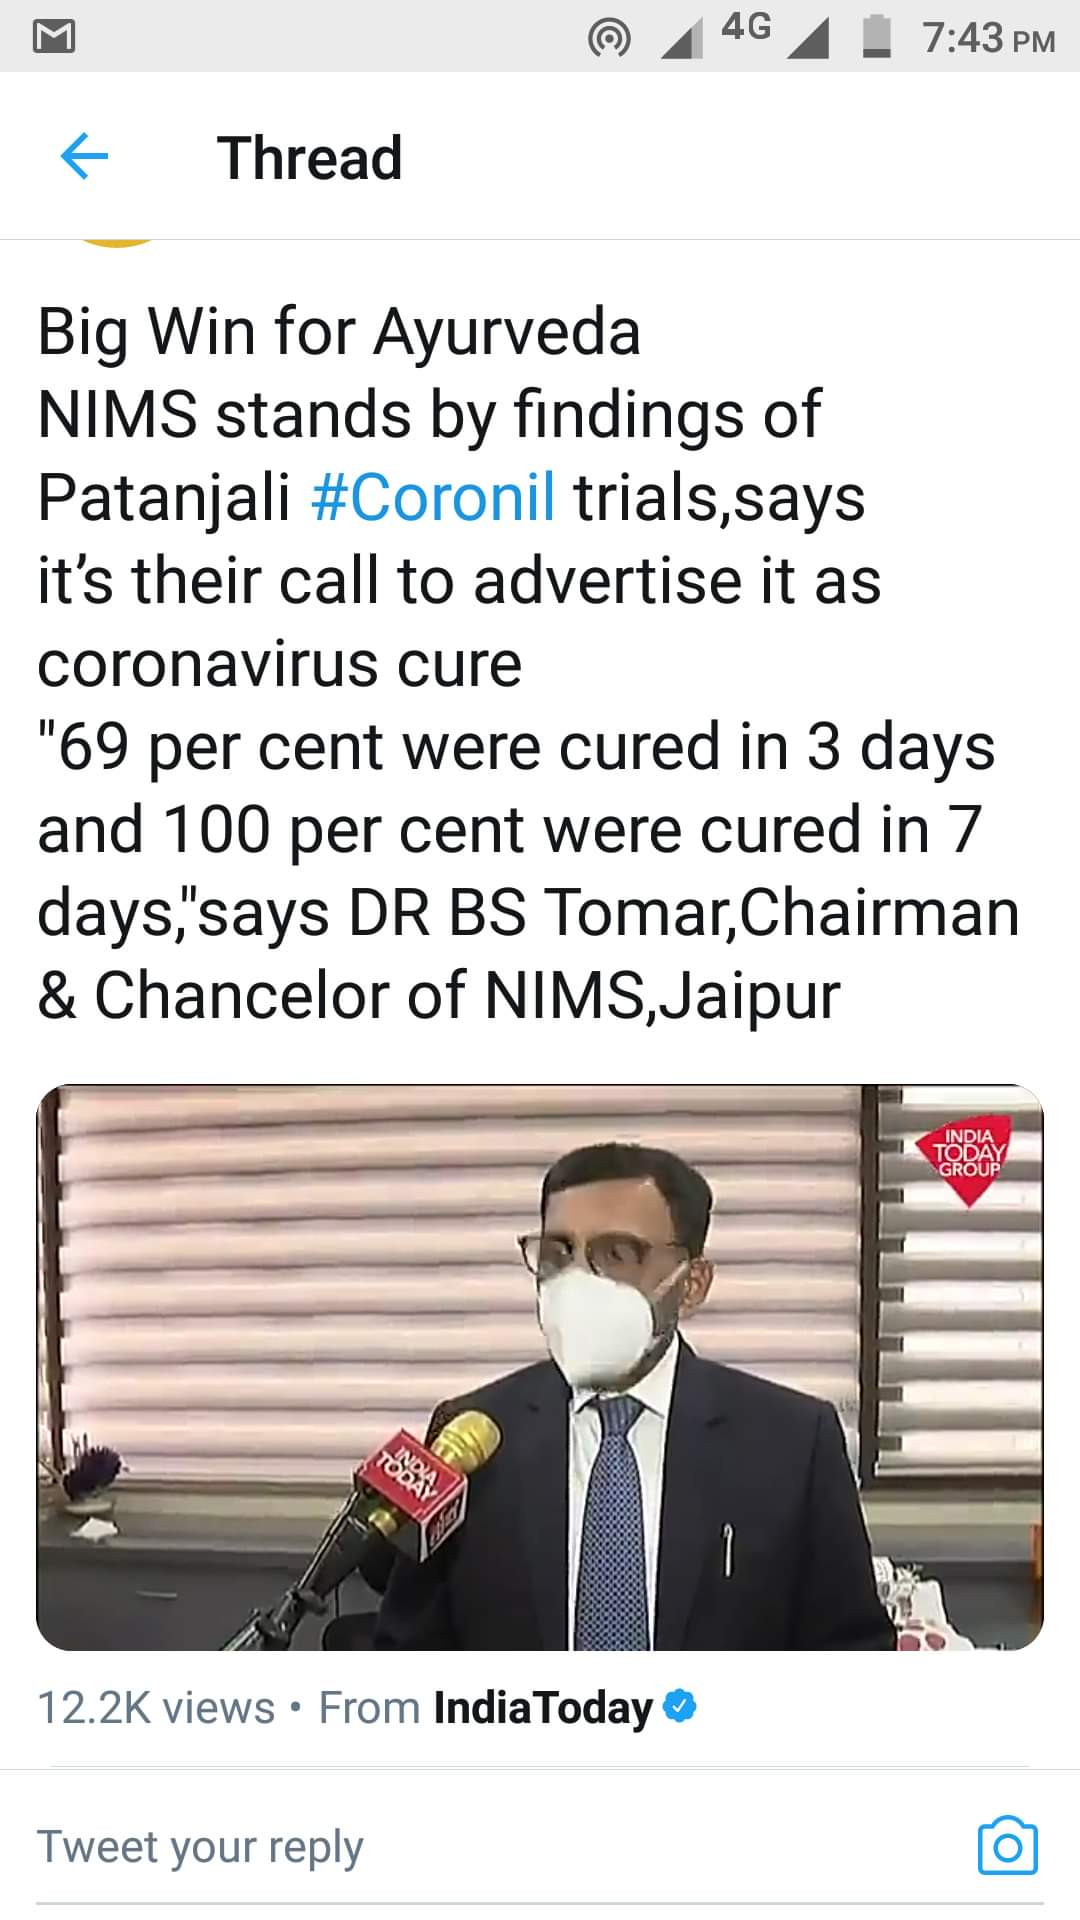 Image about NIMS Stands by Findings of Patanjali Coronil Trials